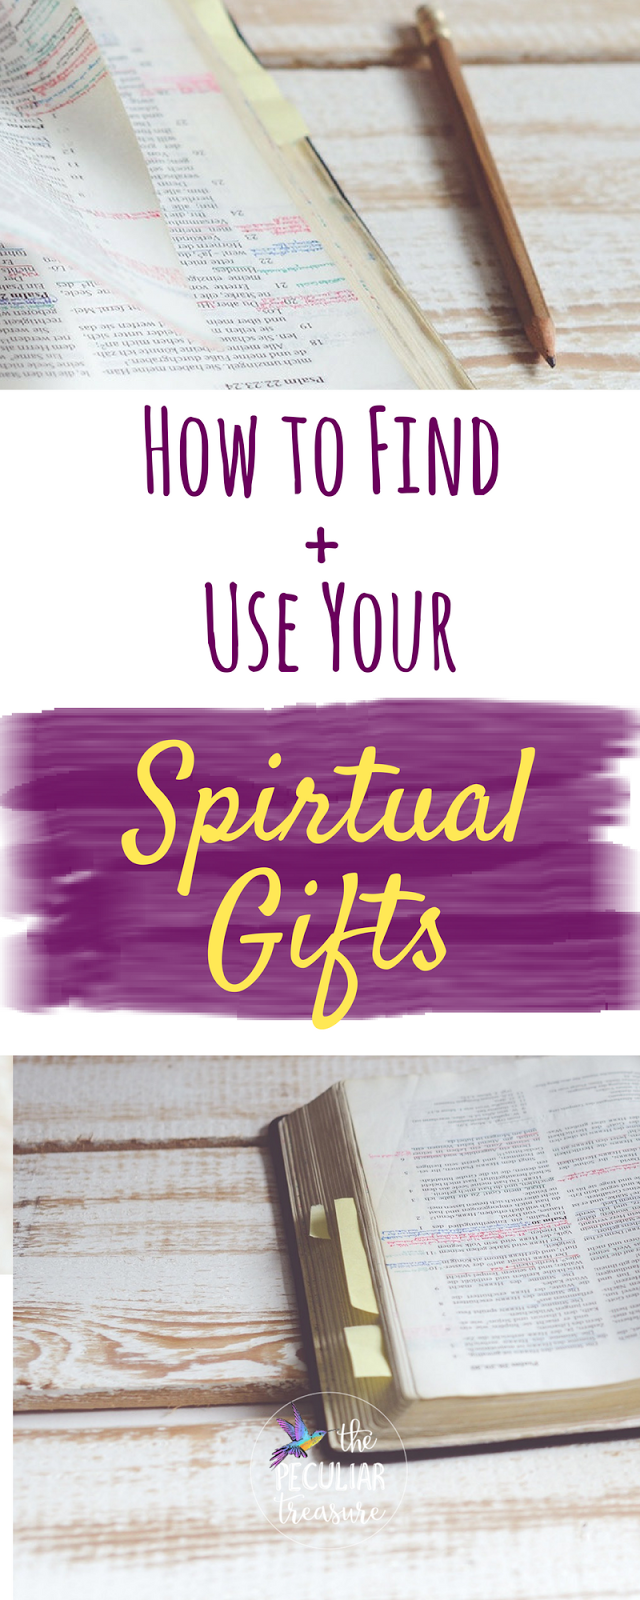 How to find use your spiritual gifts spiritual gifts spiritual how to use and find your spiritual gifts christianity faith spiritualgifts negle Choice Image